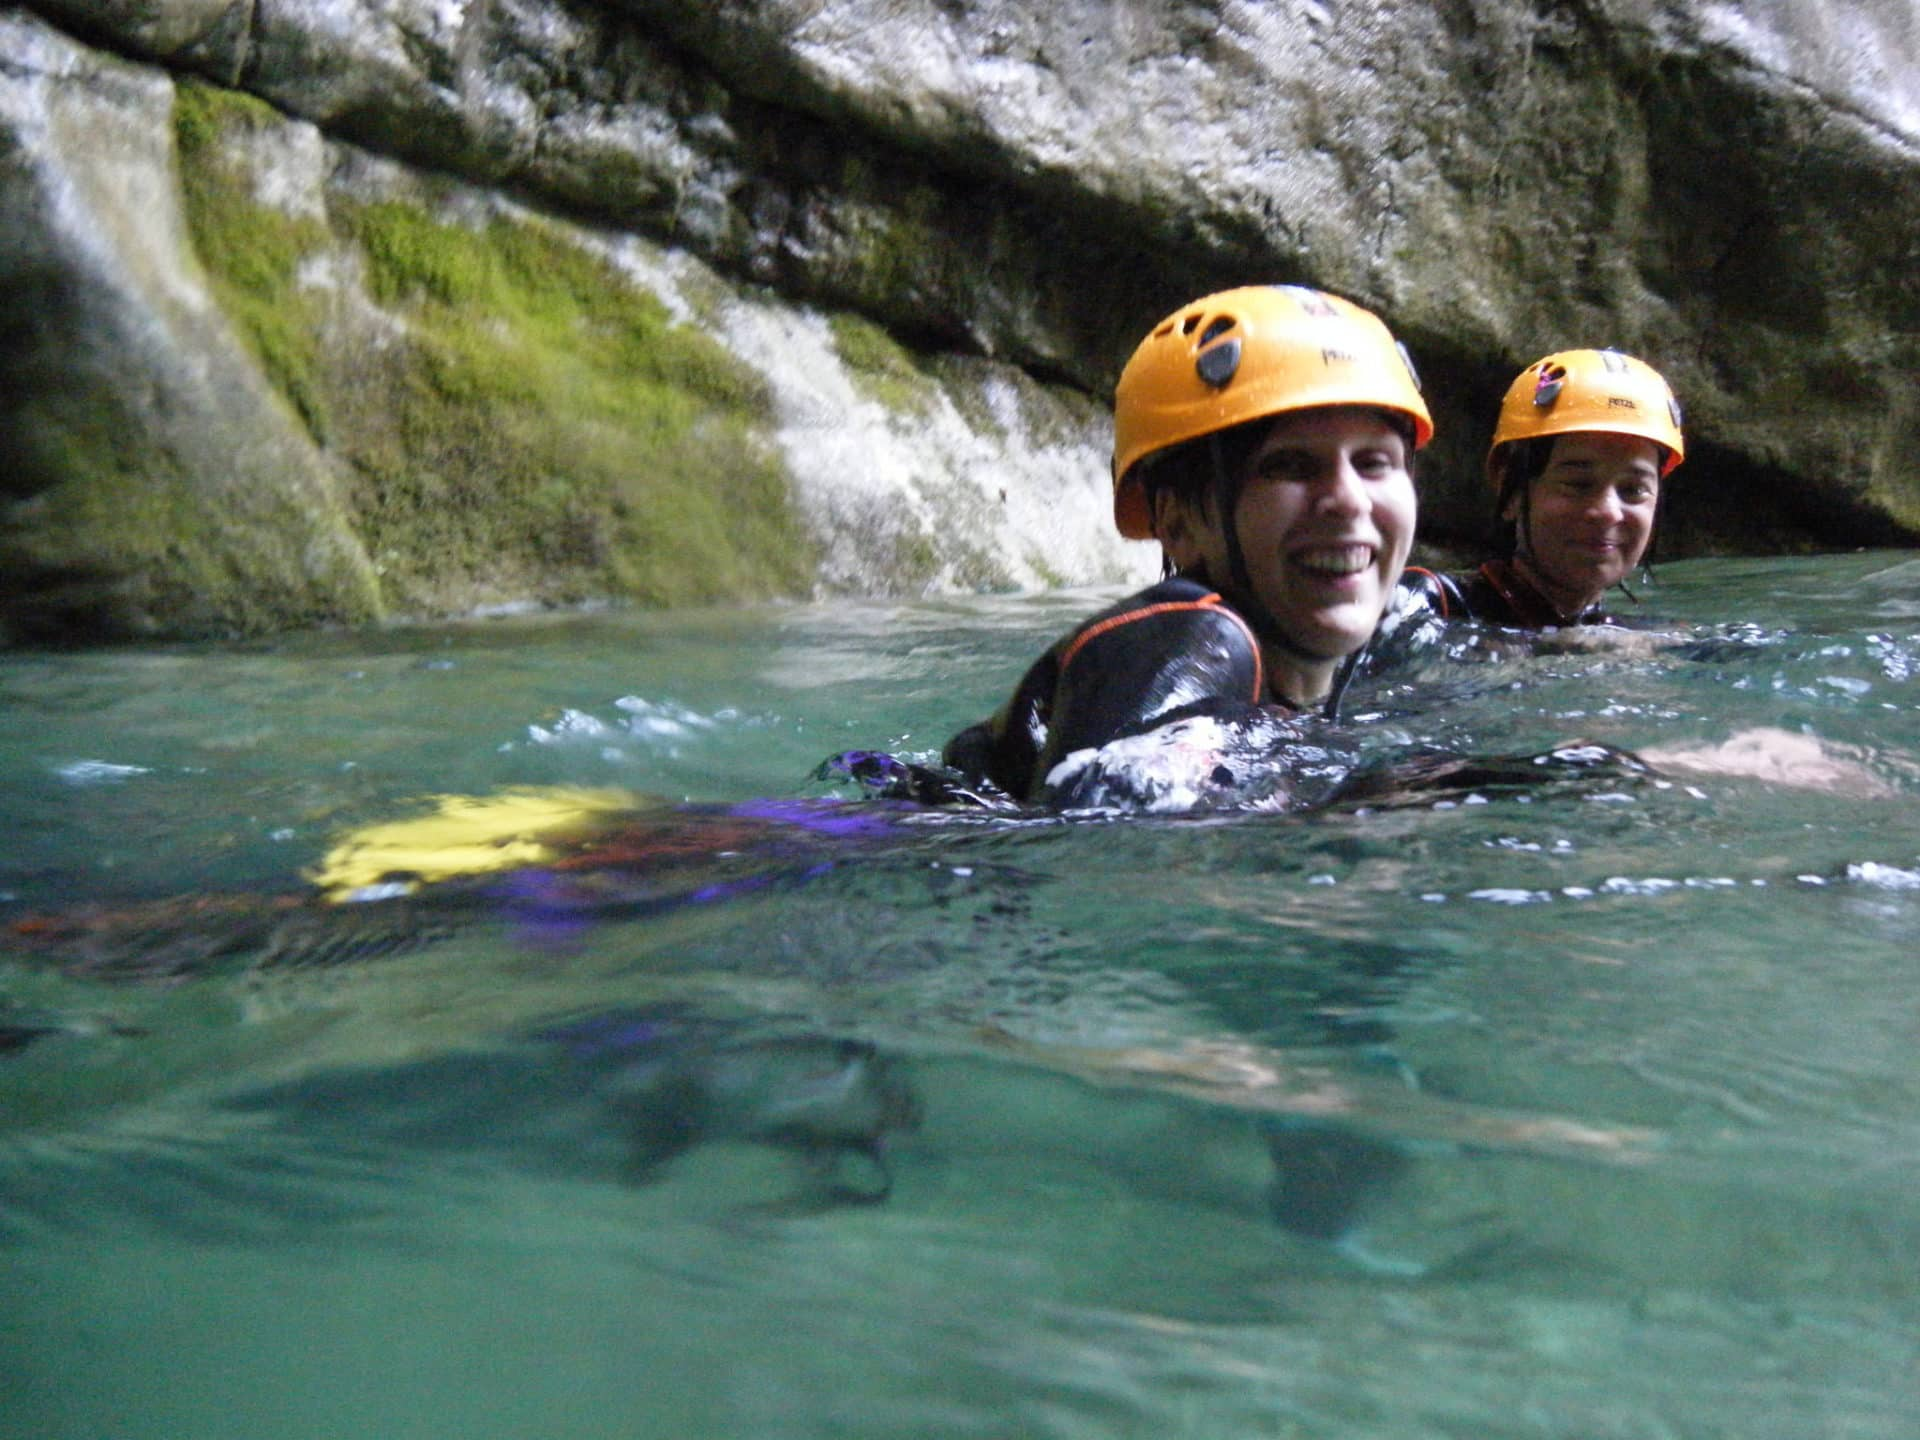 Bagnone (Massa) guided canyoning half day tour